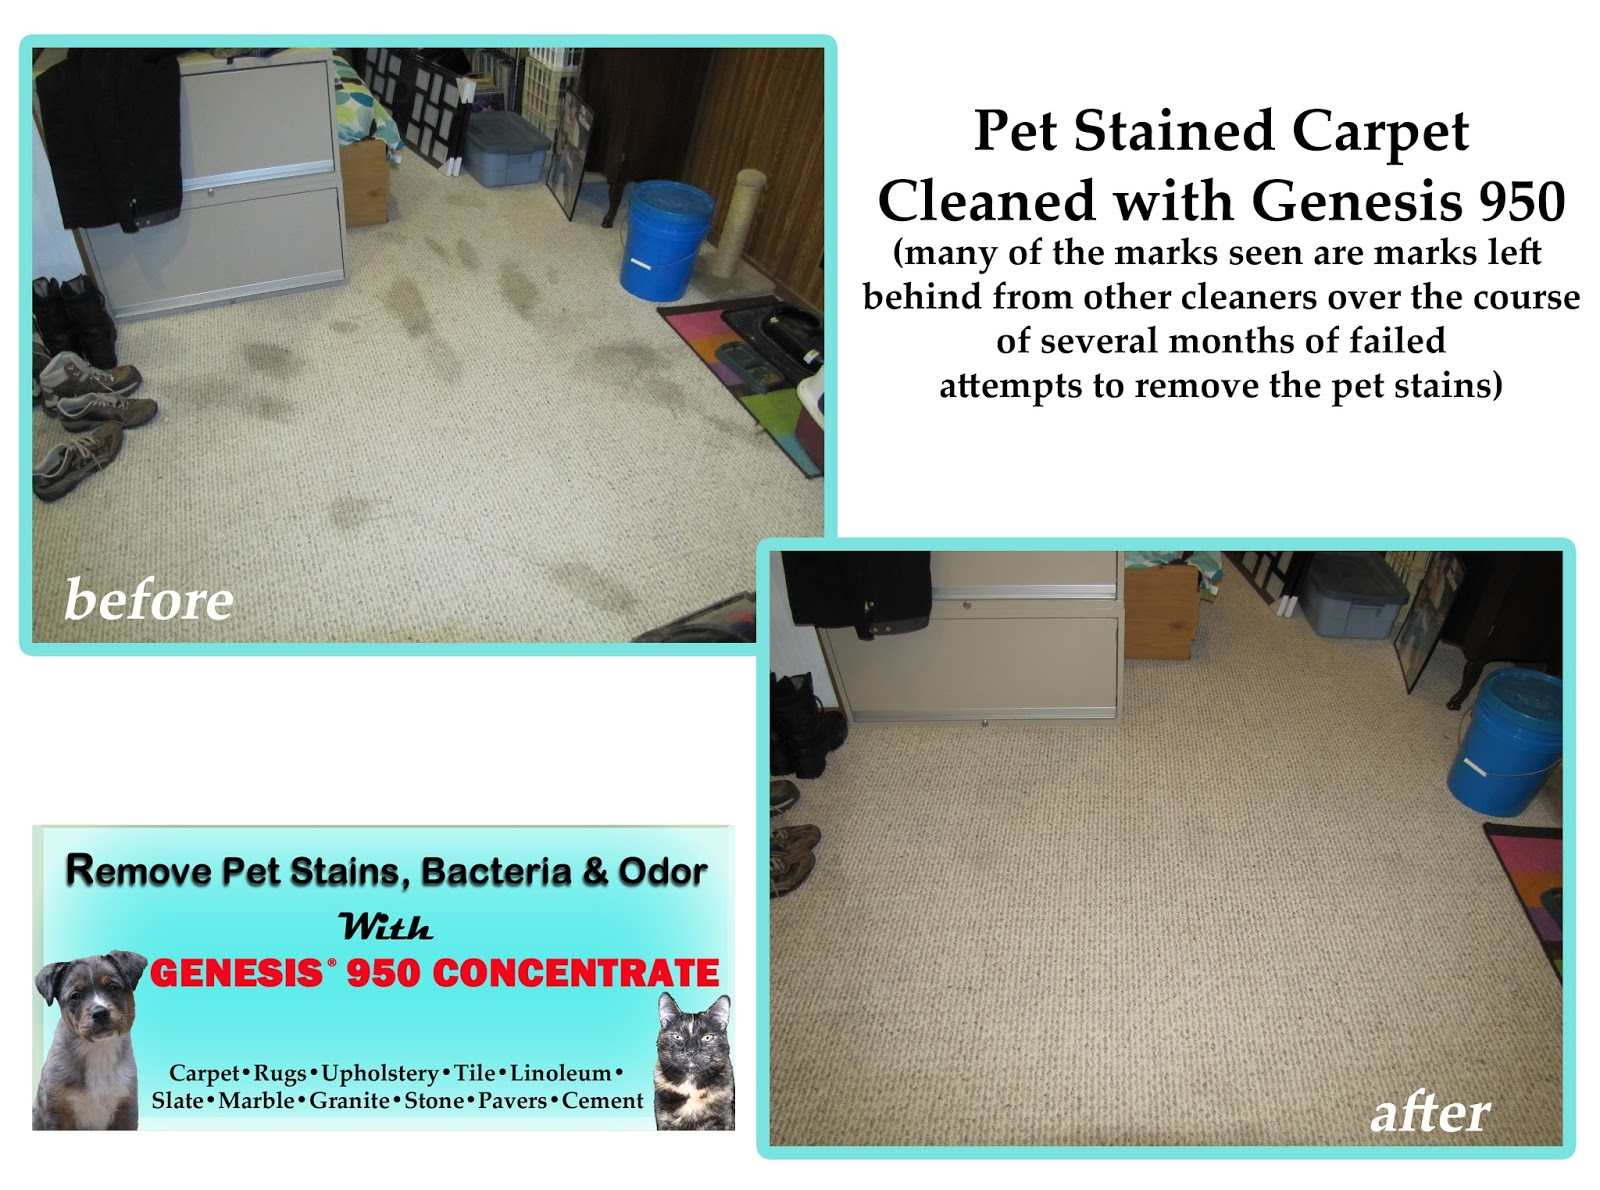 Genesis 950 Pet Stain Remover: Genesis 950 Concentrate ...